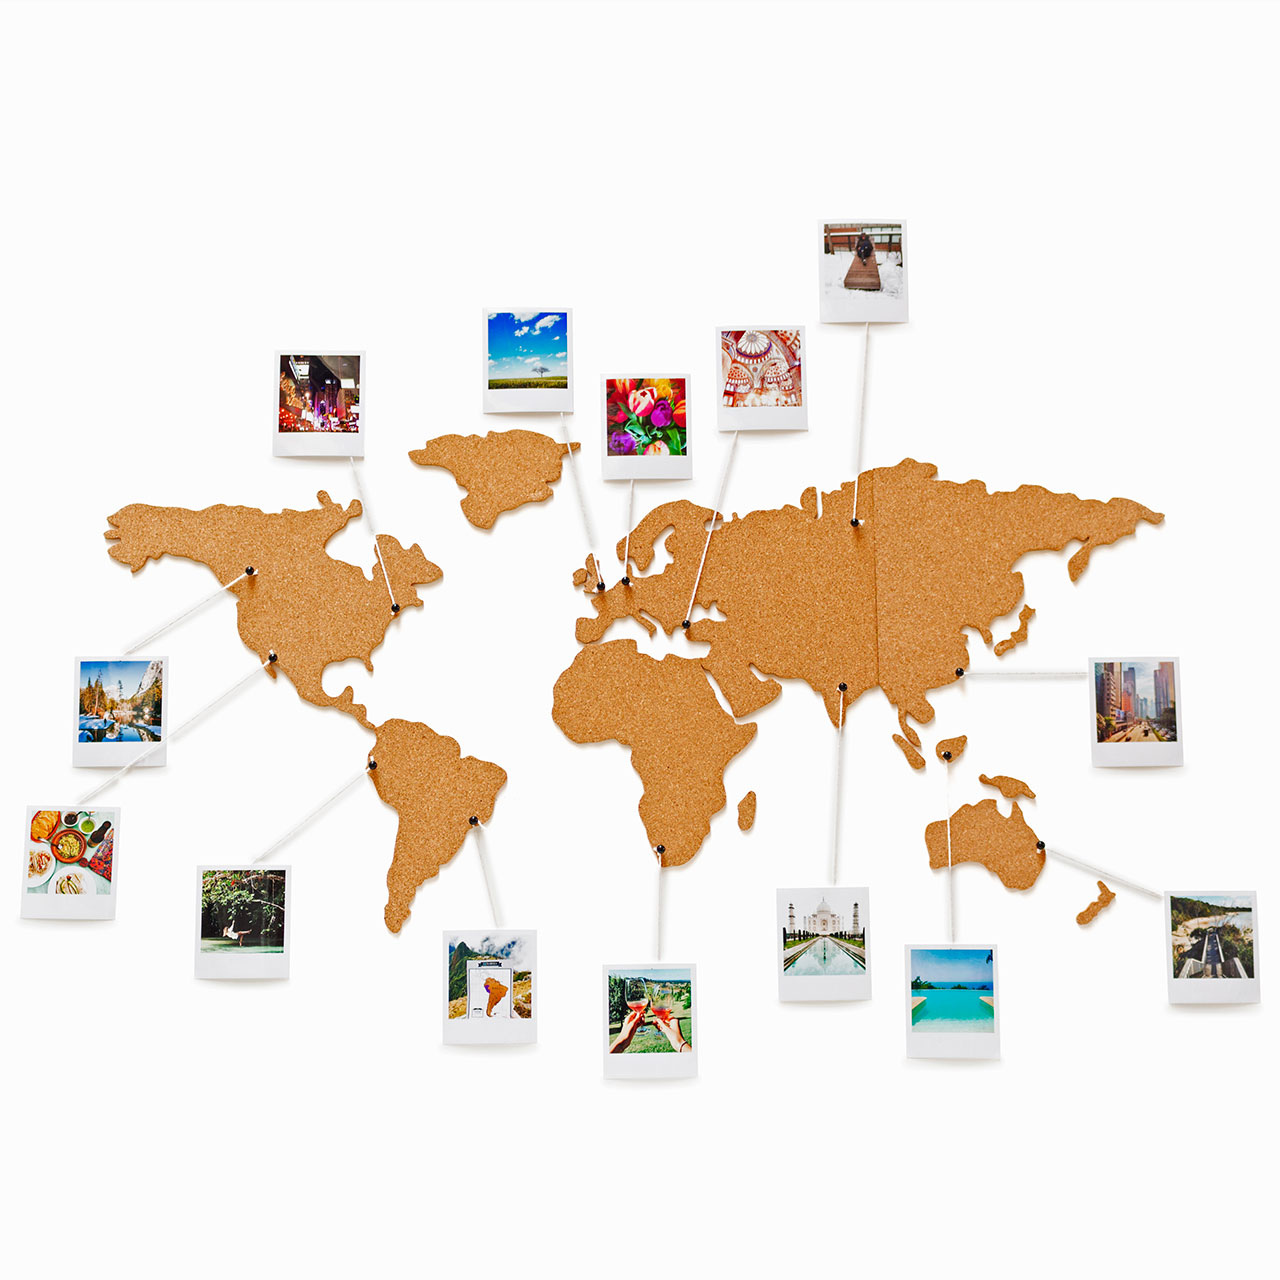 Corkboard world map cork board world map gumiabroncs Choice Image